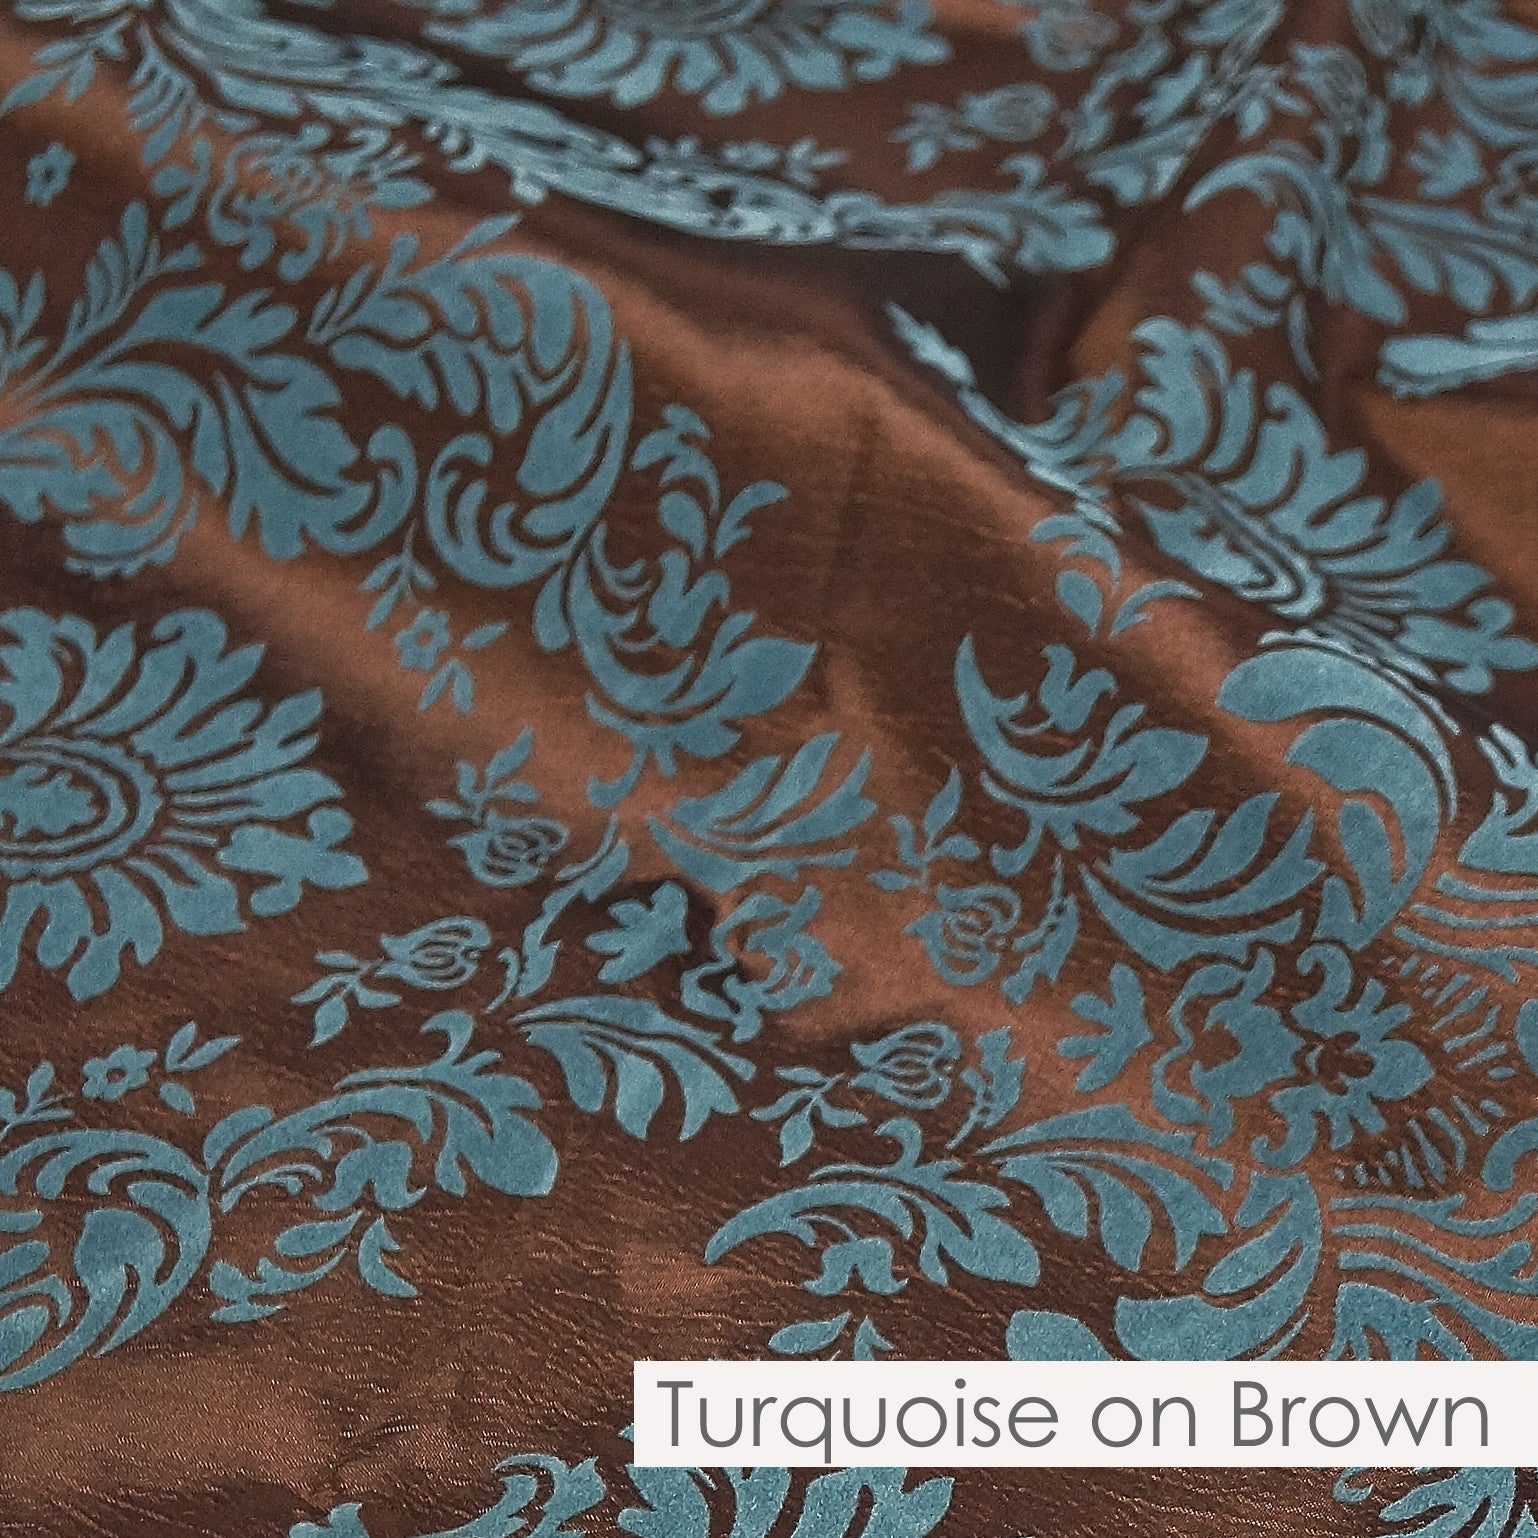 TURQUOISE ON BROWN